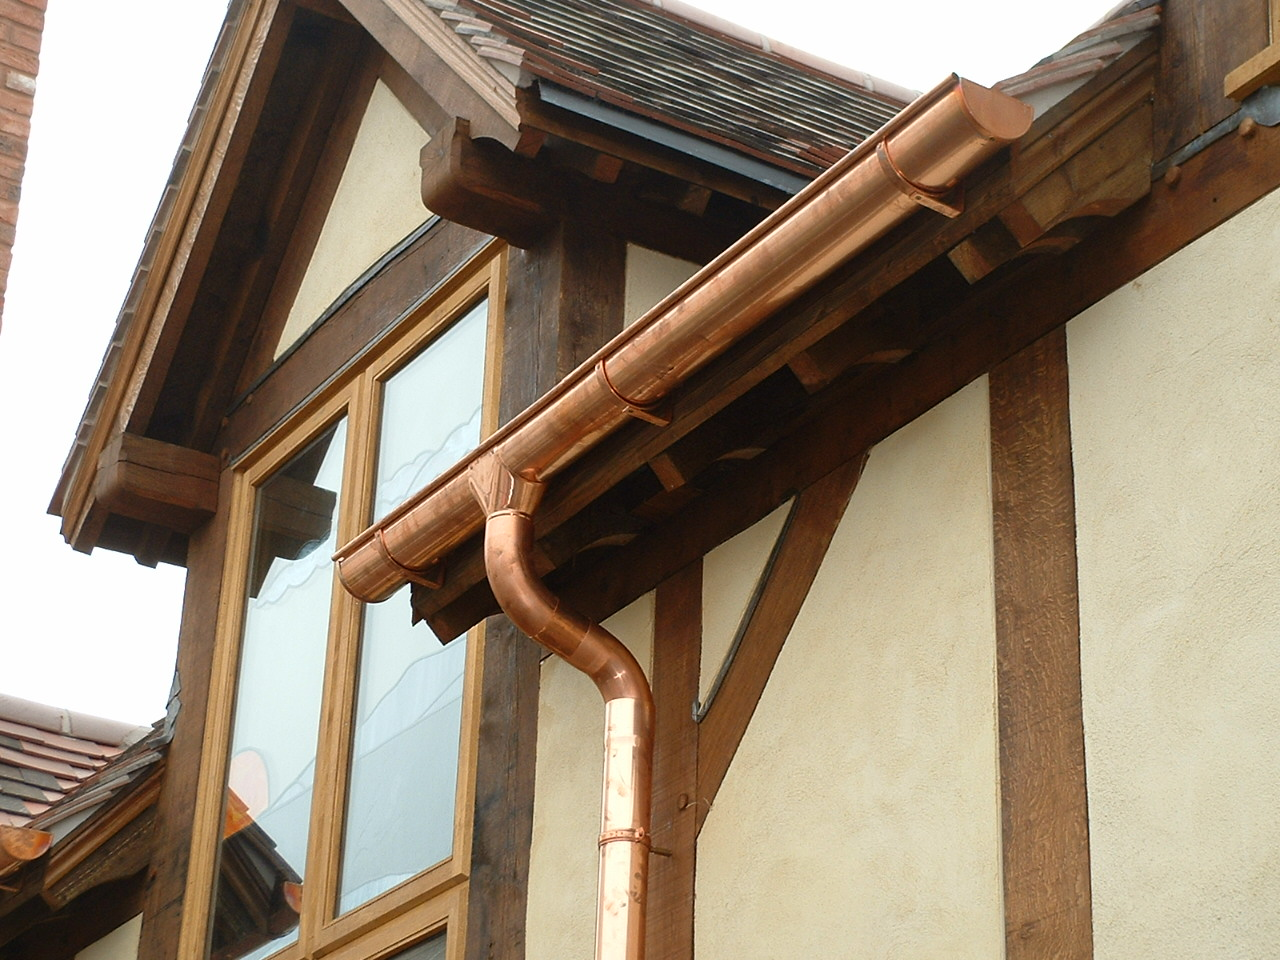 Copper guttering on new build house.